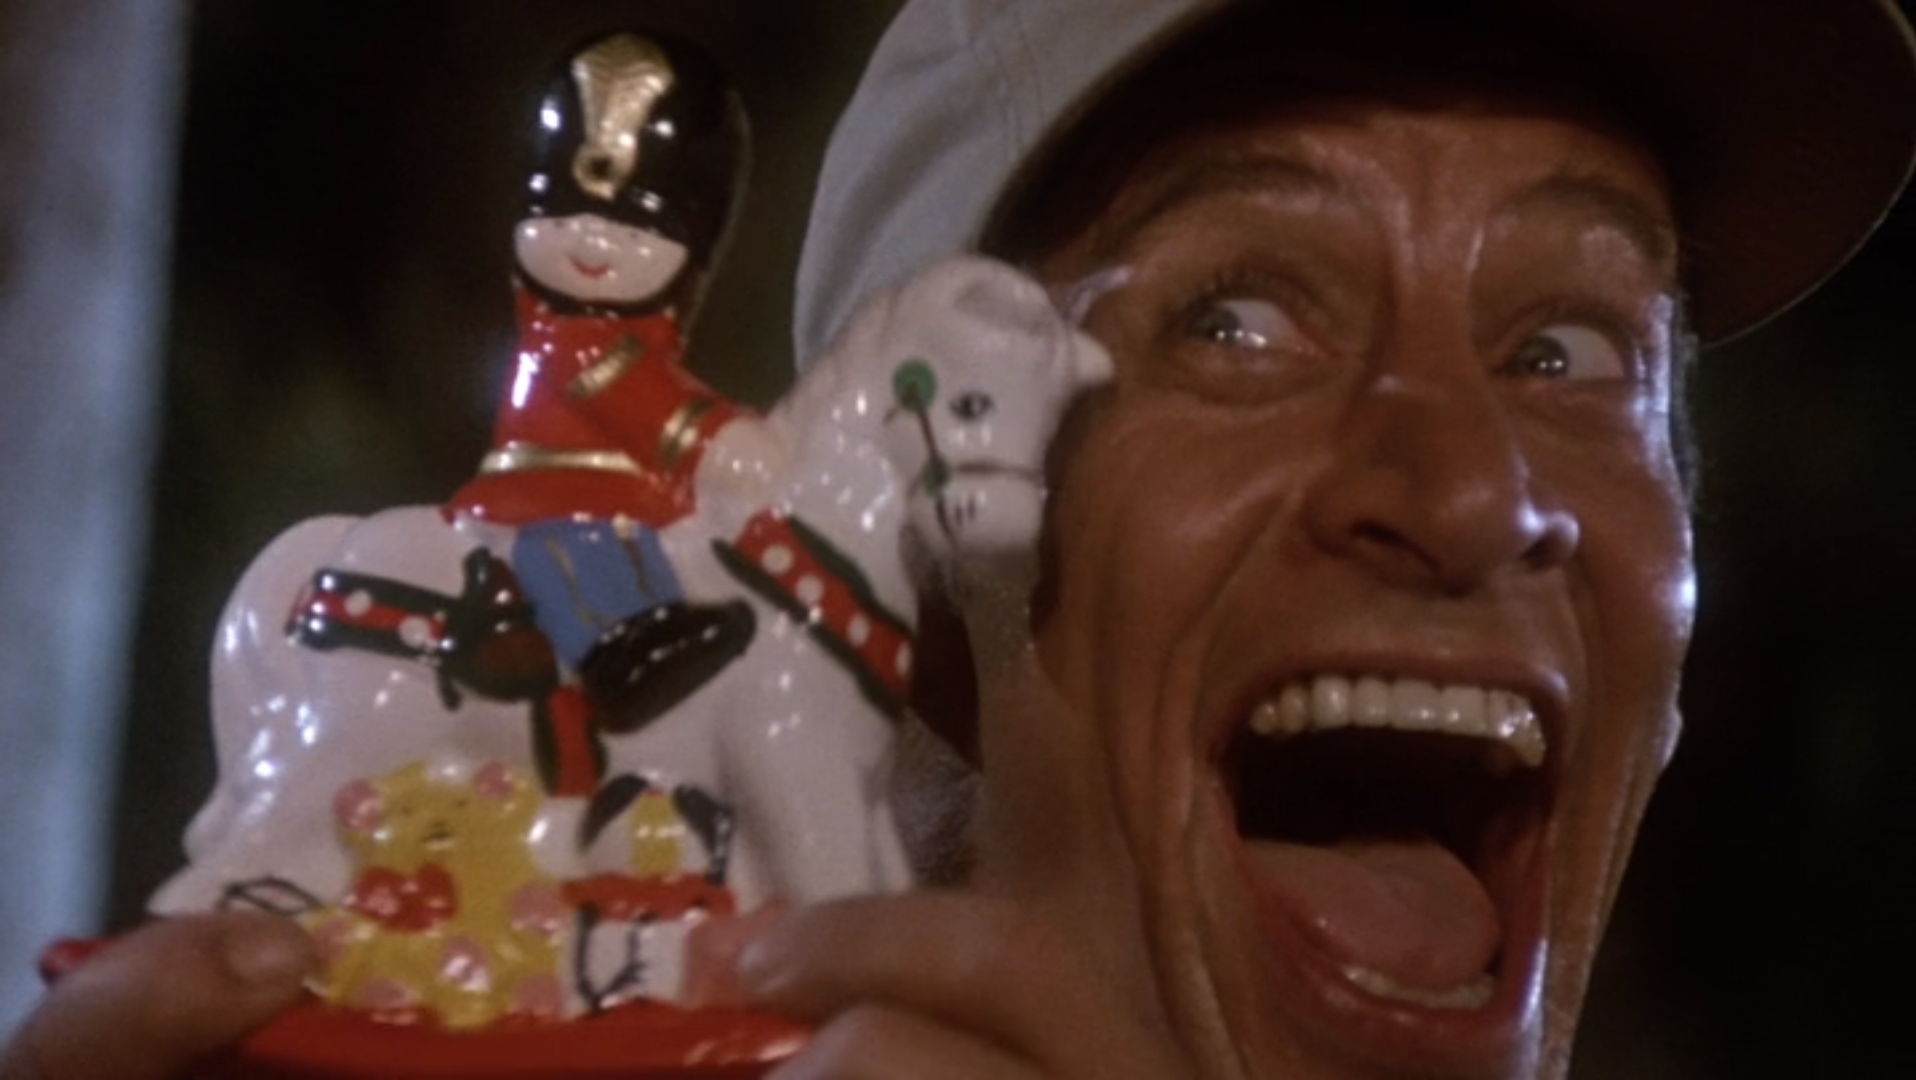 Jim Varney in Holiday movie Ernest Saves Christmas on Christian Podcast Cinematic Doctrine and Truce